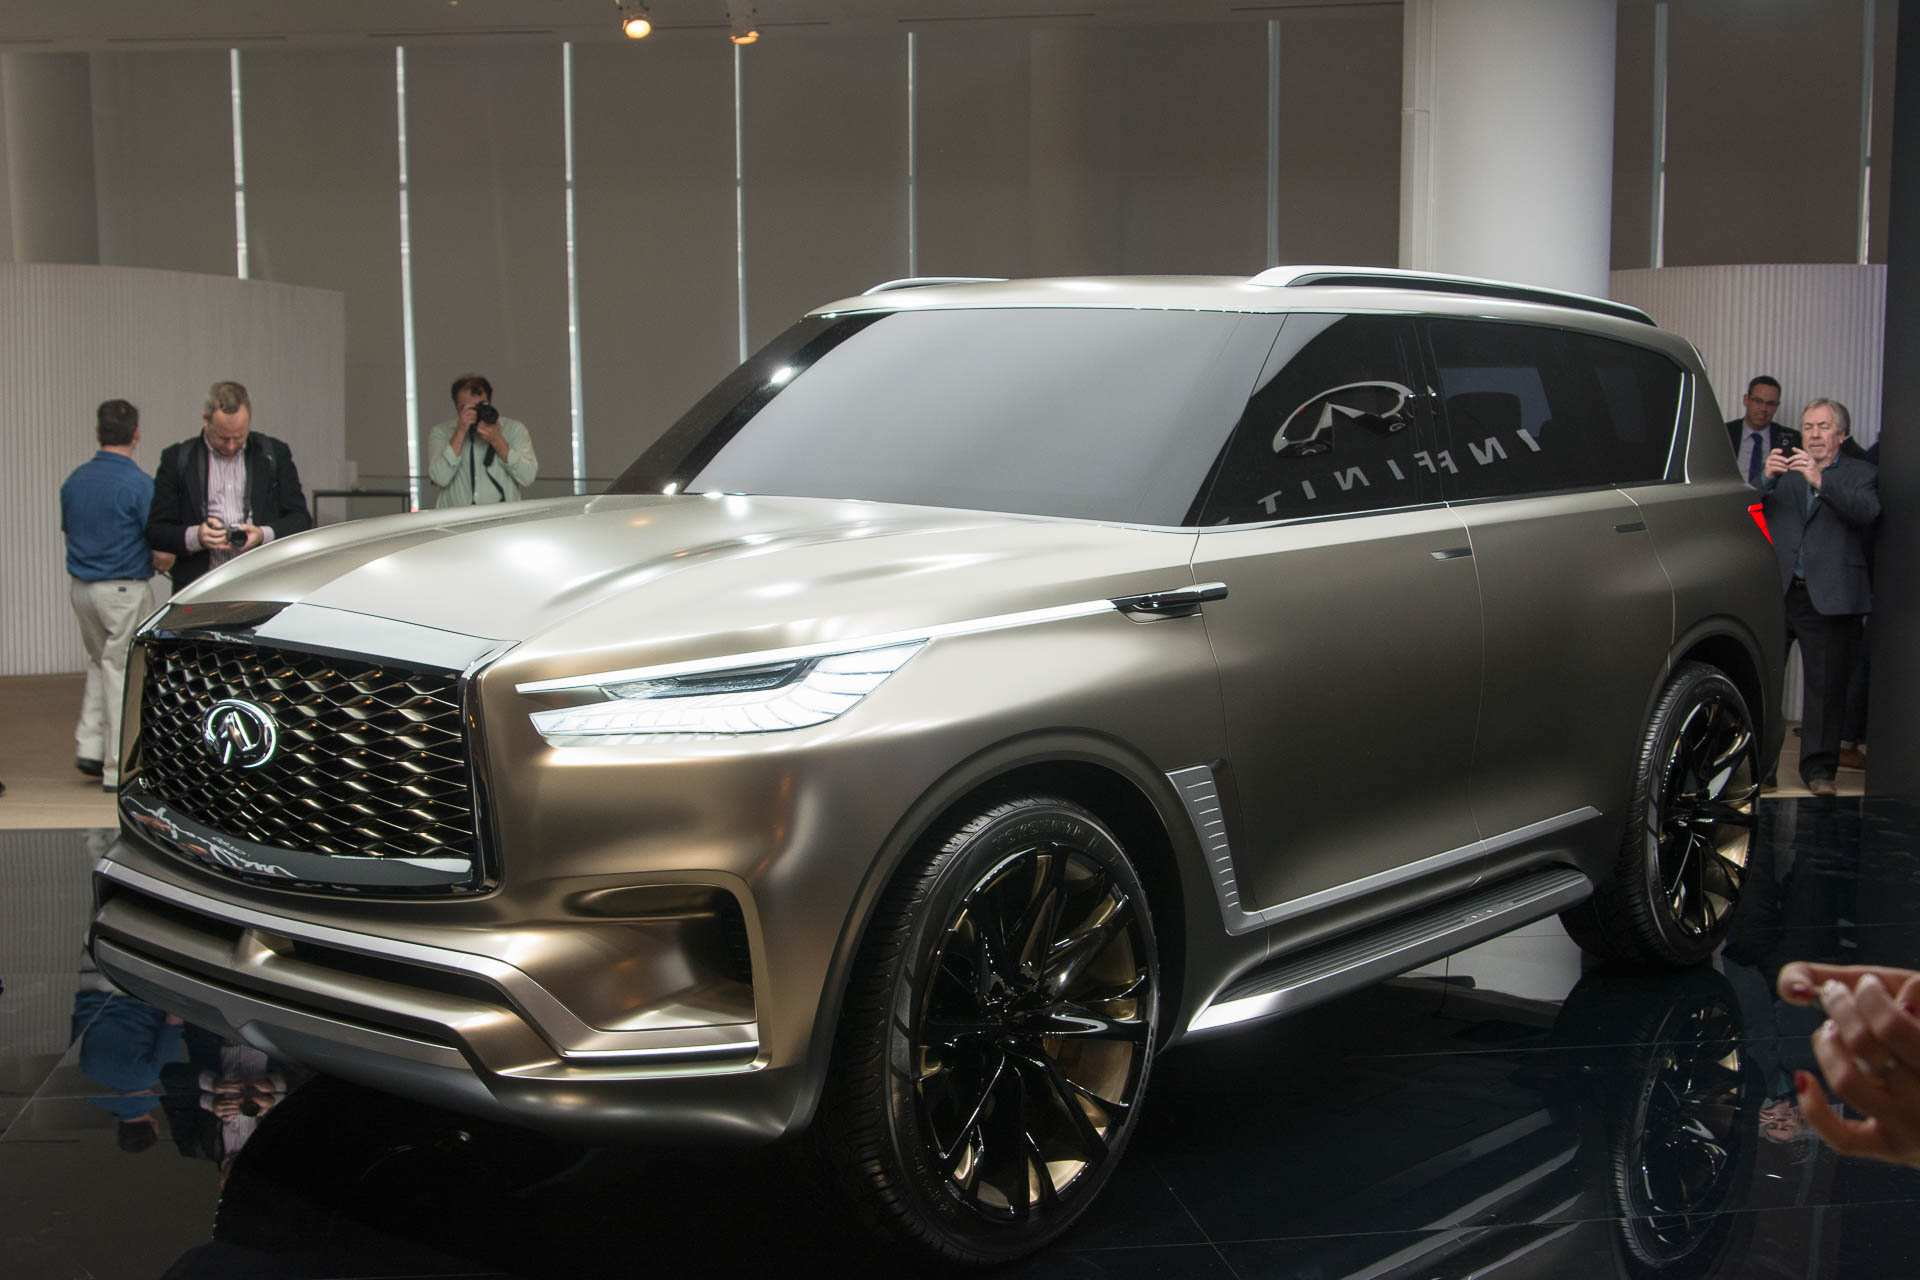 52 New When Does The 2020 Infiniti Qx80 Come Out Model by When Does The 2020 Infiniti Qx80 Come Out